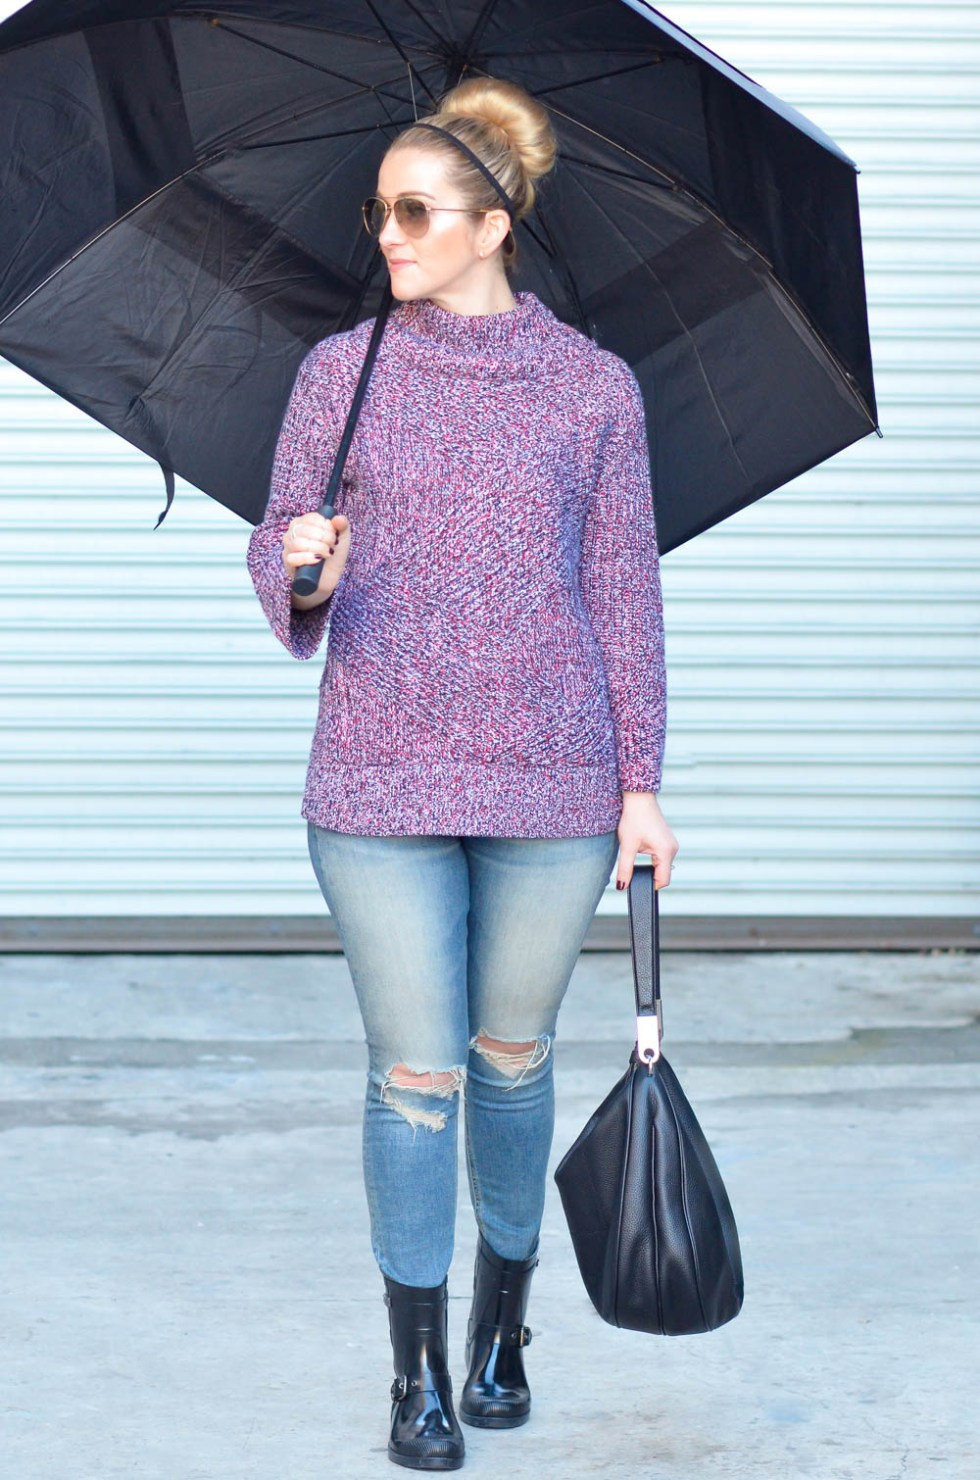 Women's Rainy Day Outfit w. Short Rain Boots